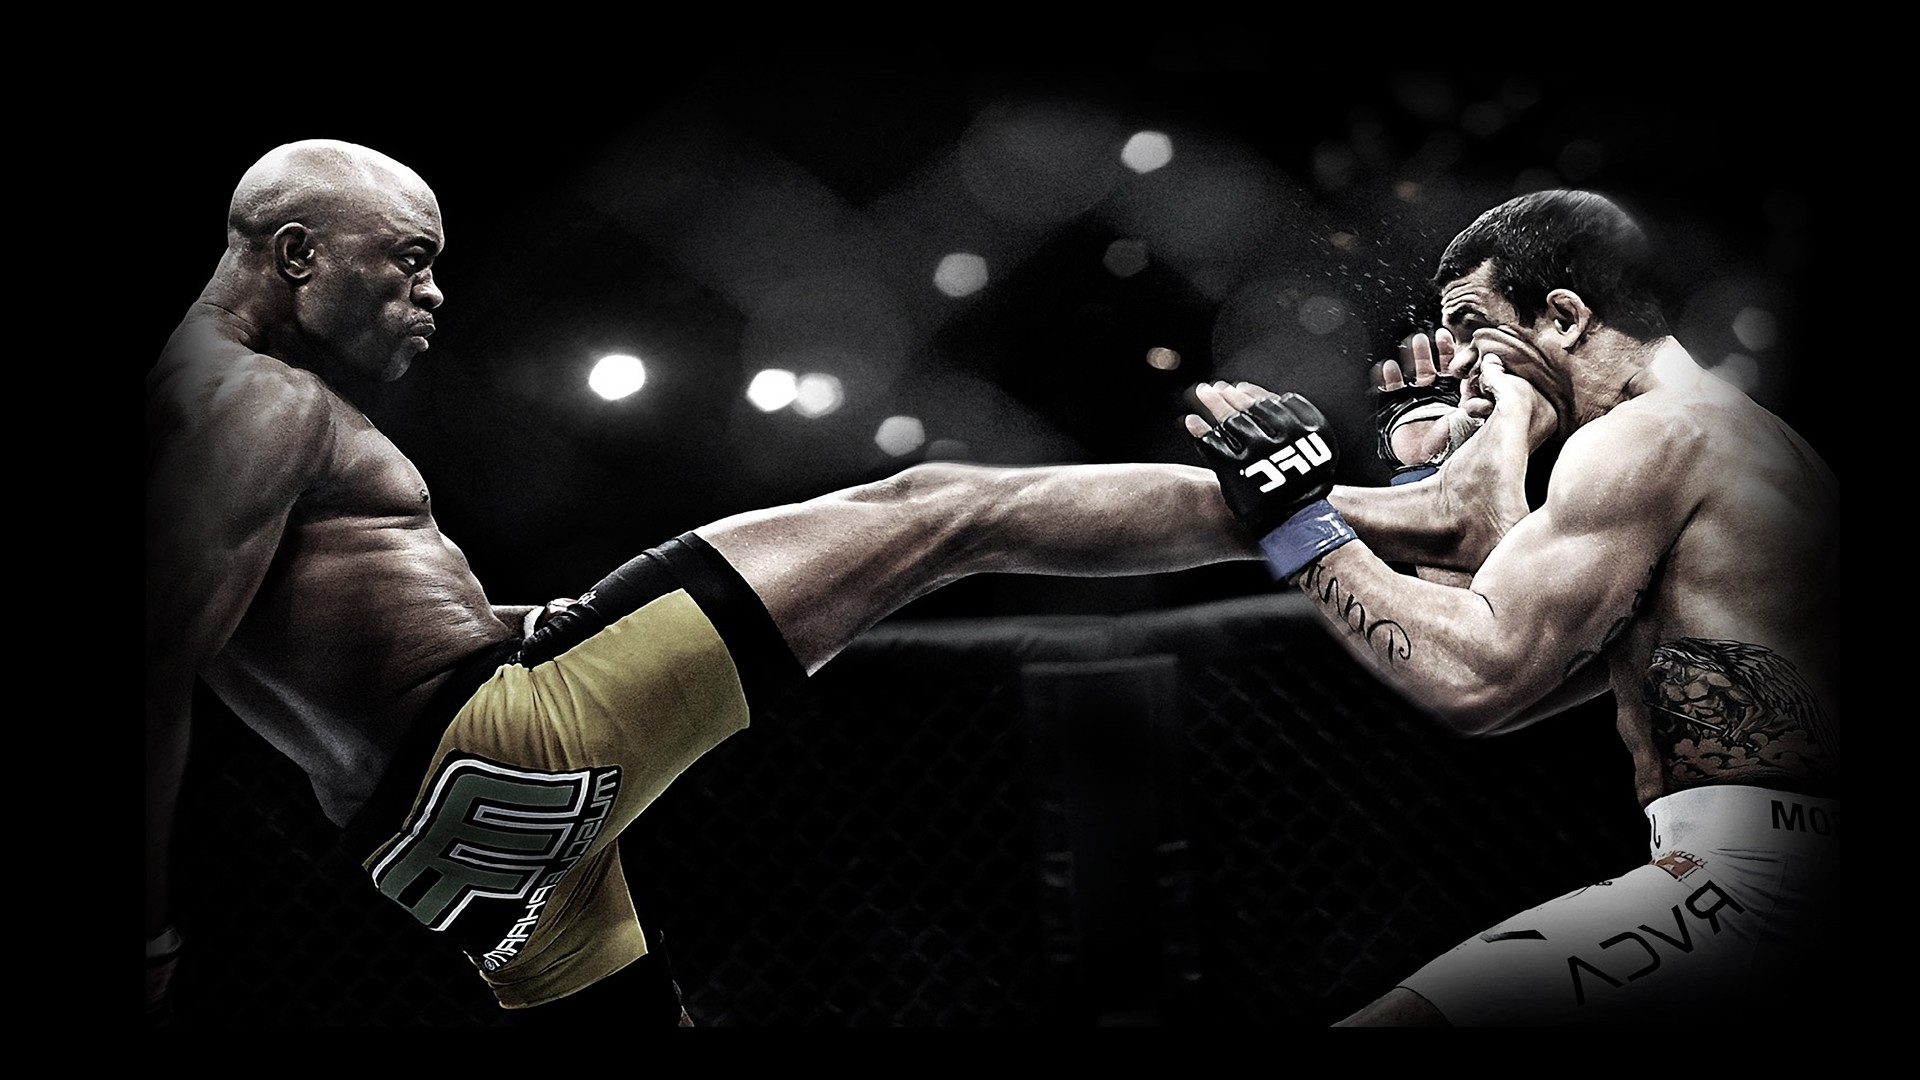 Hd Mma Wallpaper 68 Images